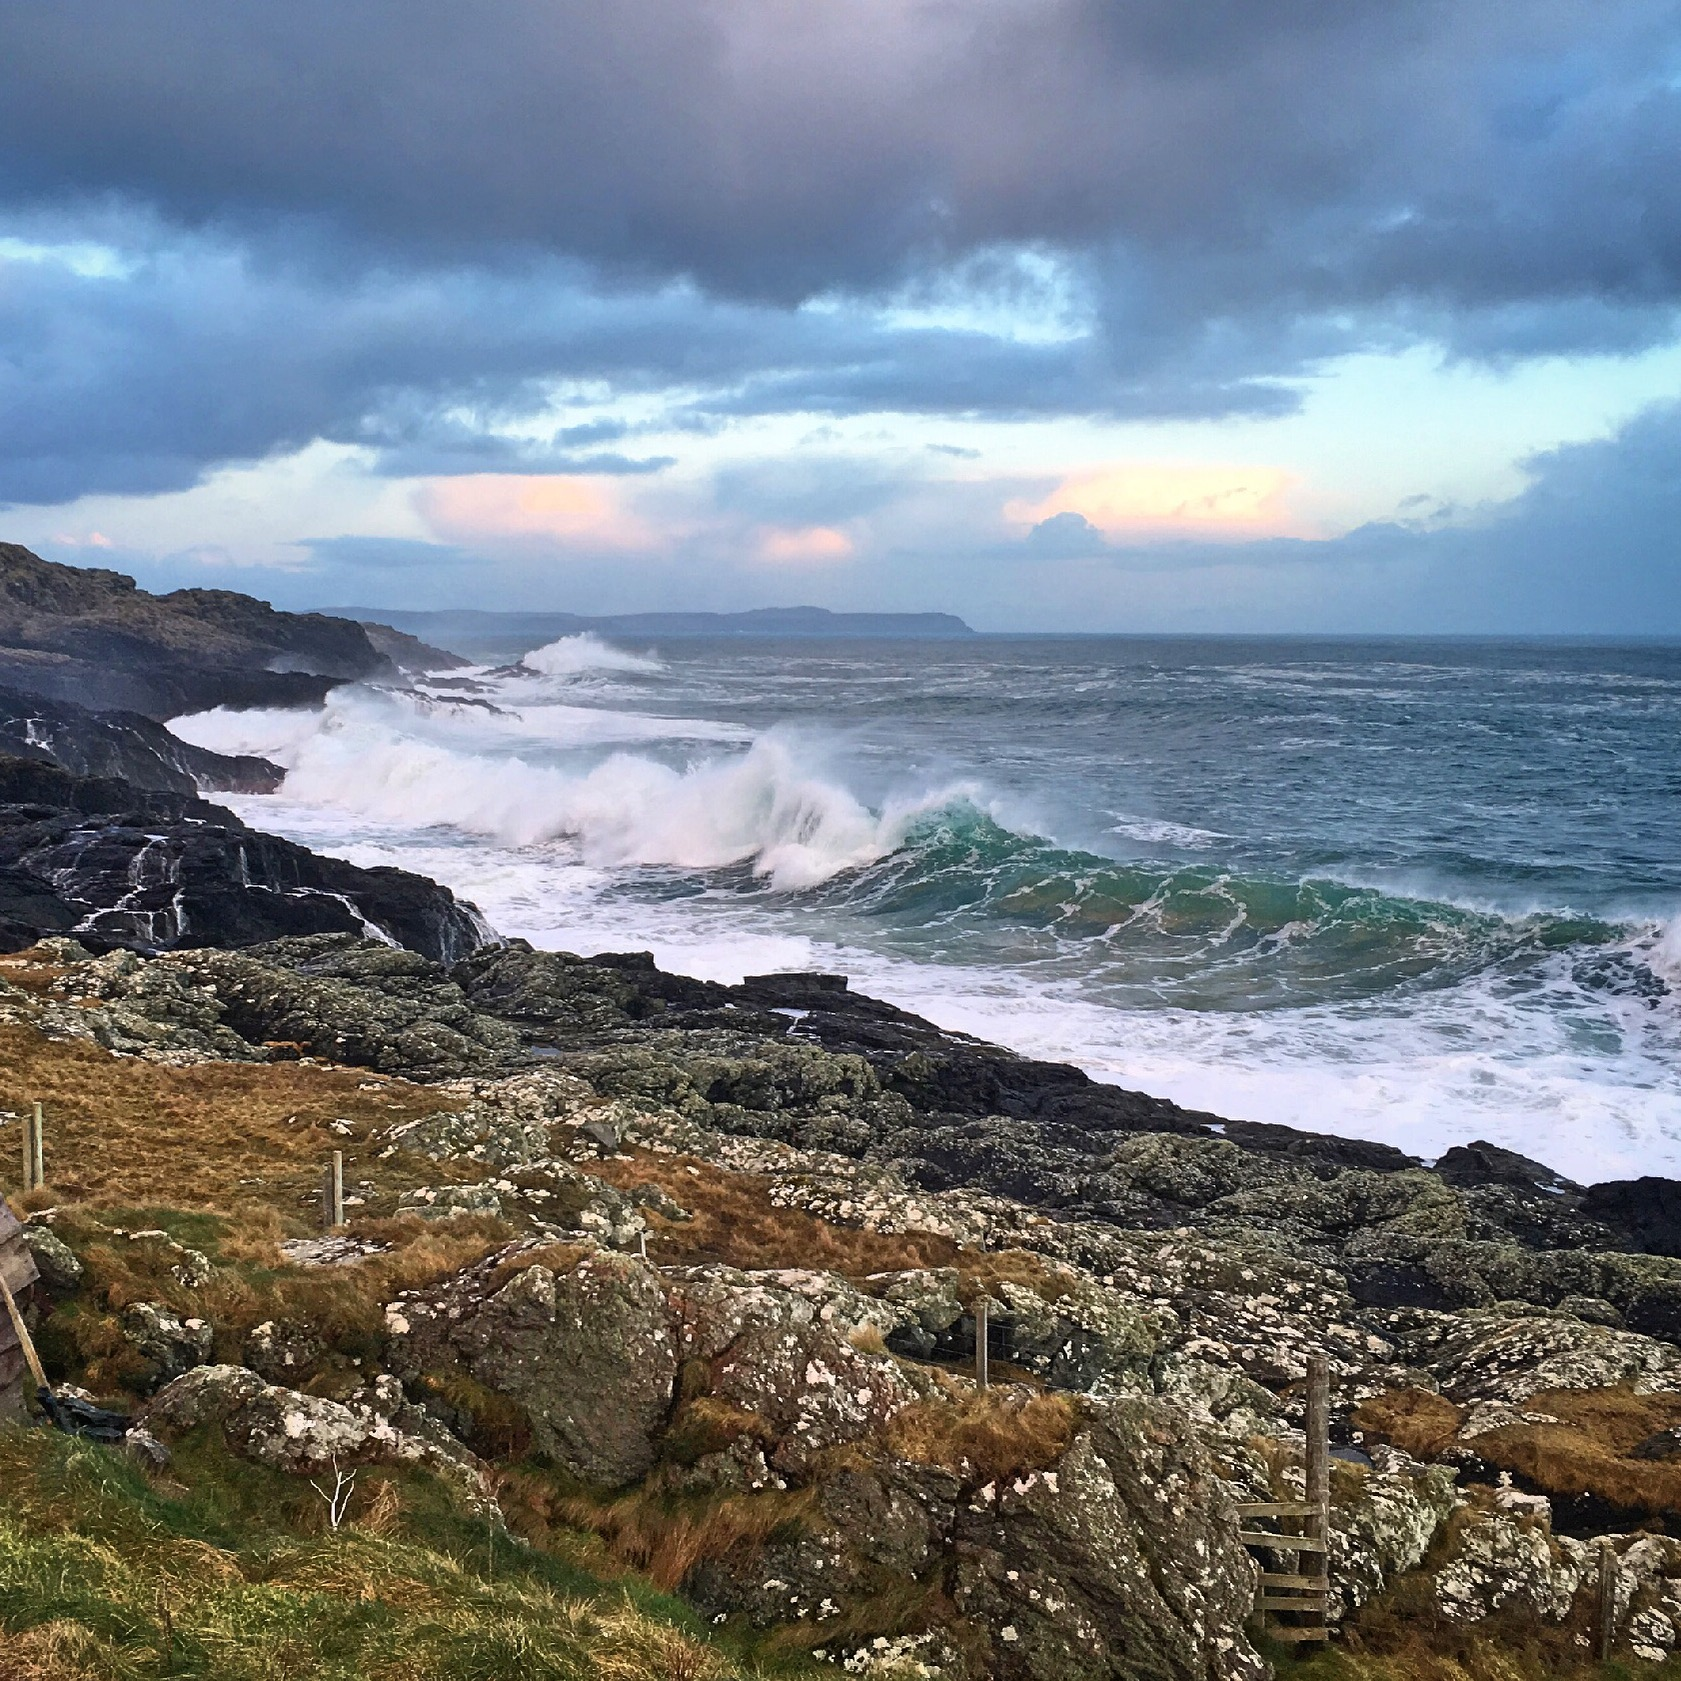 The west coast of Scotland is incredibly biodiverse… but why? - Within the Hebrides, warm oceanic currents from the south and west, and offshoots from the Gulf Stream, mix with cool coastal currents. This, in combination with the complex bathymetry (underwater mountains and valleys) encourages mixing, forcing cold nutrient-rich waters up into the sunlit zone, where photosynthesis can occur, creating areas of high productivity. The plankton blooms off the west coast of Scotland are so extensive they can be seen from space!The complex coastline also means there are a variety of habitats, from sheltered areas in the long sea lochs to fast tidal currents between islands, coastal and shelf waters and the open ocean of the Atlantic. Deep water close to the coast, such as in the sound of Raasay, brings offshore and deep-diving species close to the coast too.